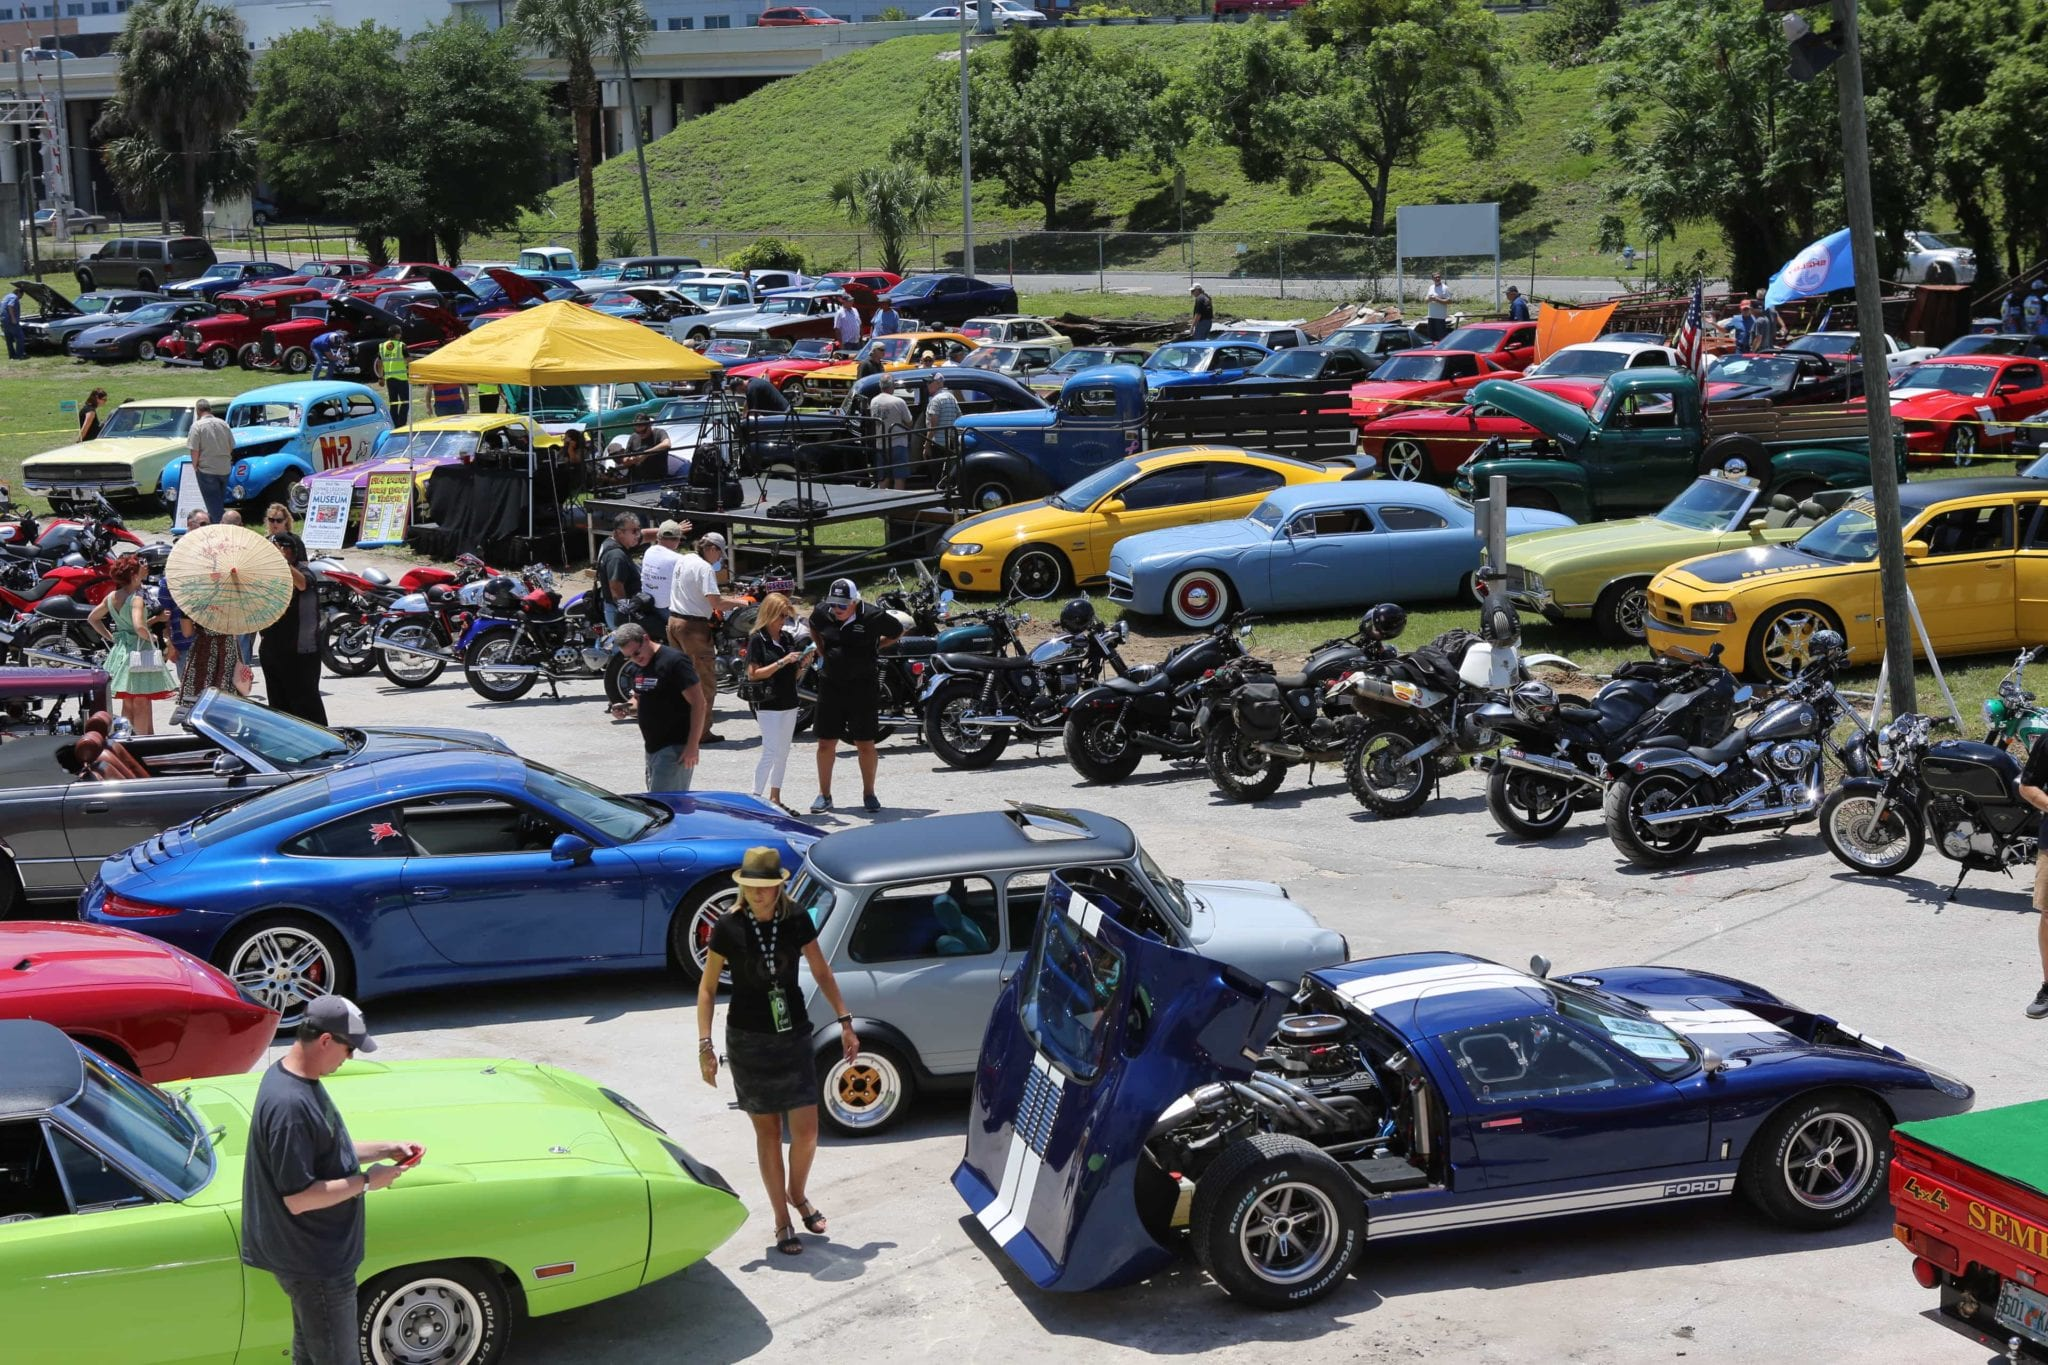 Ace Cafe Orlando Opens On May With Free Rock N Roll Concerts - Ace cafe orlando car show